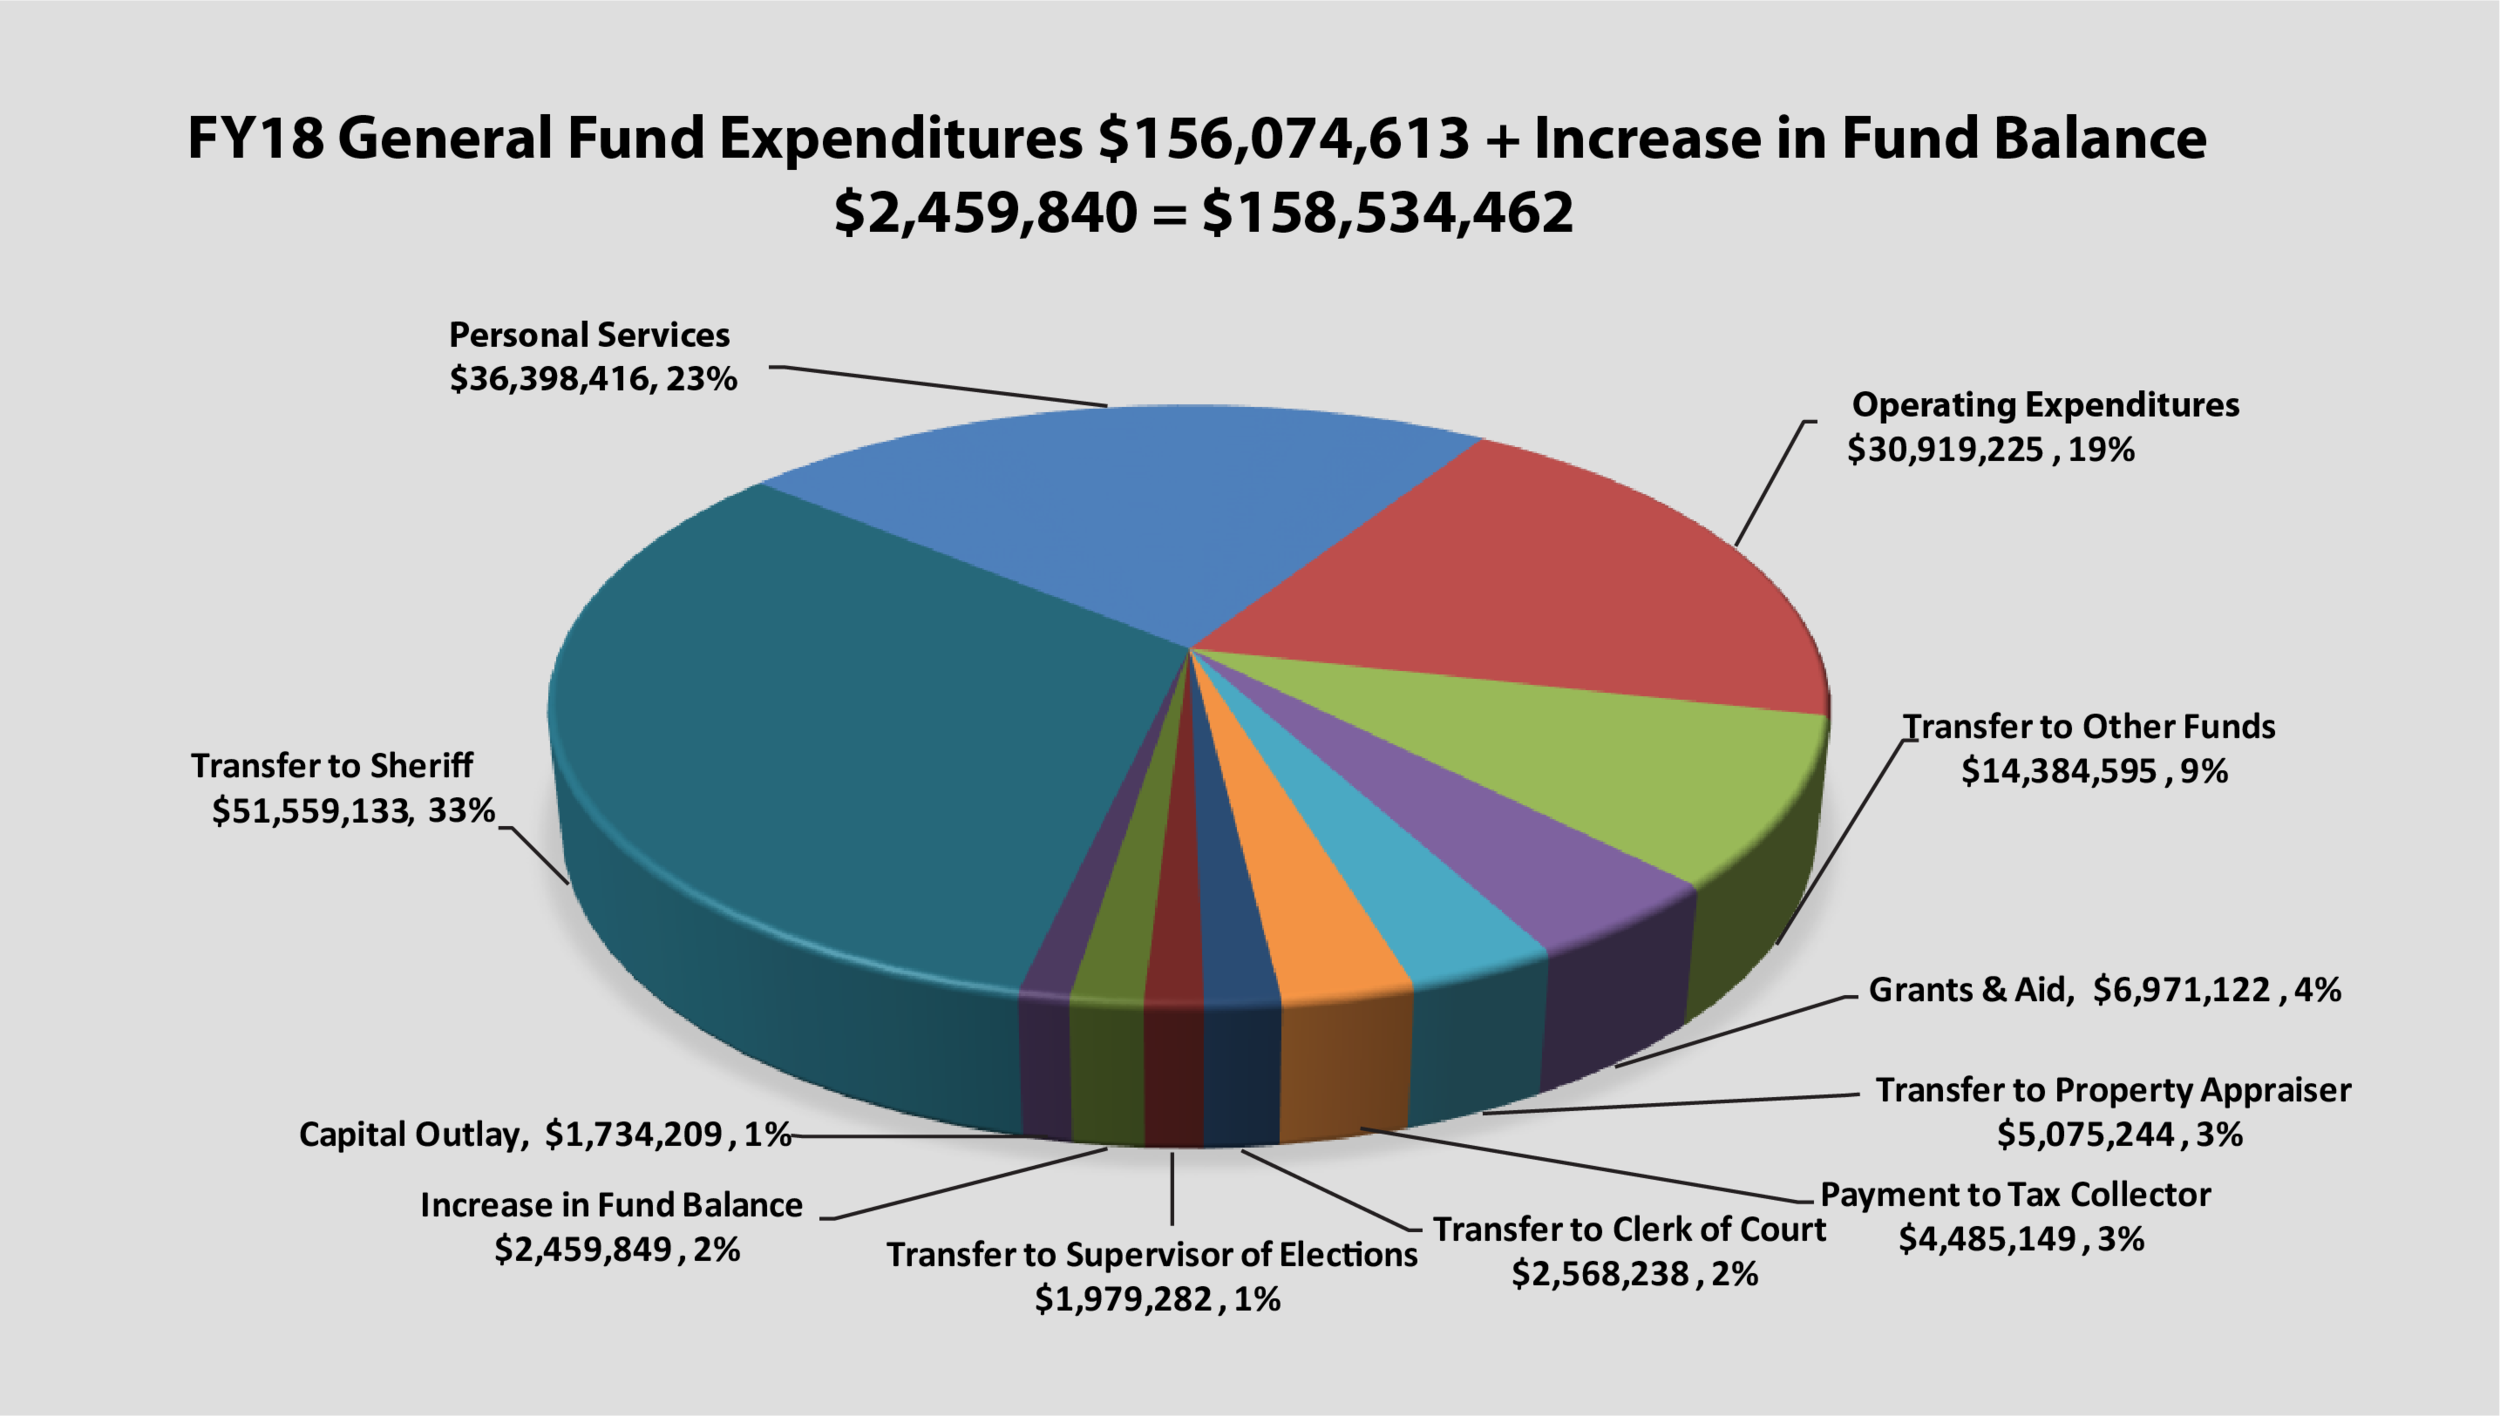 Pie chart of FY18 General Fund Expenditures $156,074,613 + Increase in Fund Balance $2,459,840 = $158,534,462, Transfer to Sheriff $51,559,133 , Personal Services $36,398,416, Operating Expenditures $30,919,225, Transfer to Other Funds $14,384,595, Grants & Aid $6,971,122, Transfer to Property Appraiser $5,075,244, Payment to Tax Collector $4,485,149, Transfer to Clerk of Court $2,568,238, Increase in Fund Balance $2,459,849, Transfer to Supervisor of Elections $1,979,282, Capital Outlay $1,734,209